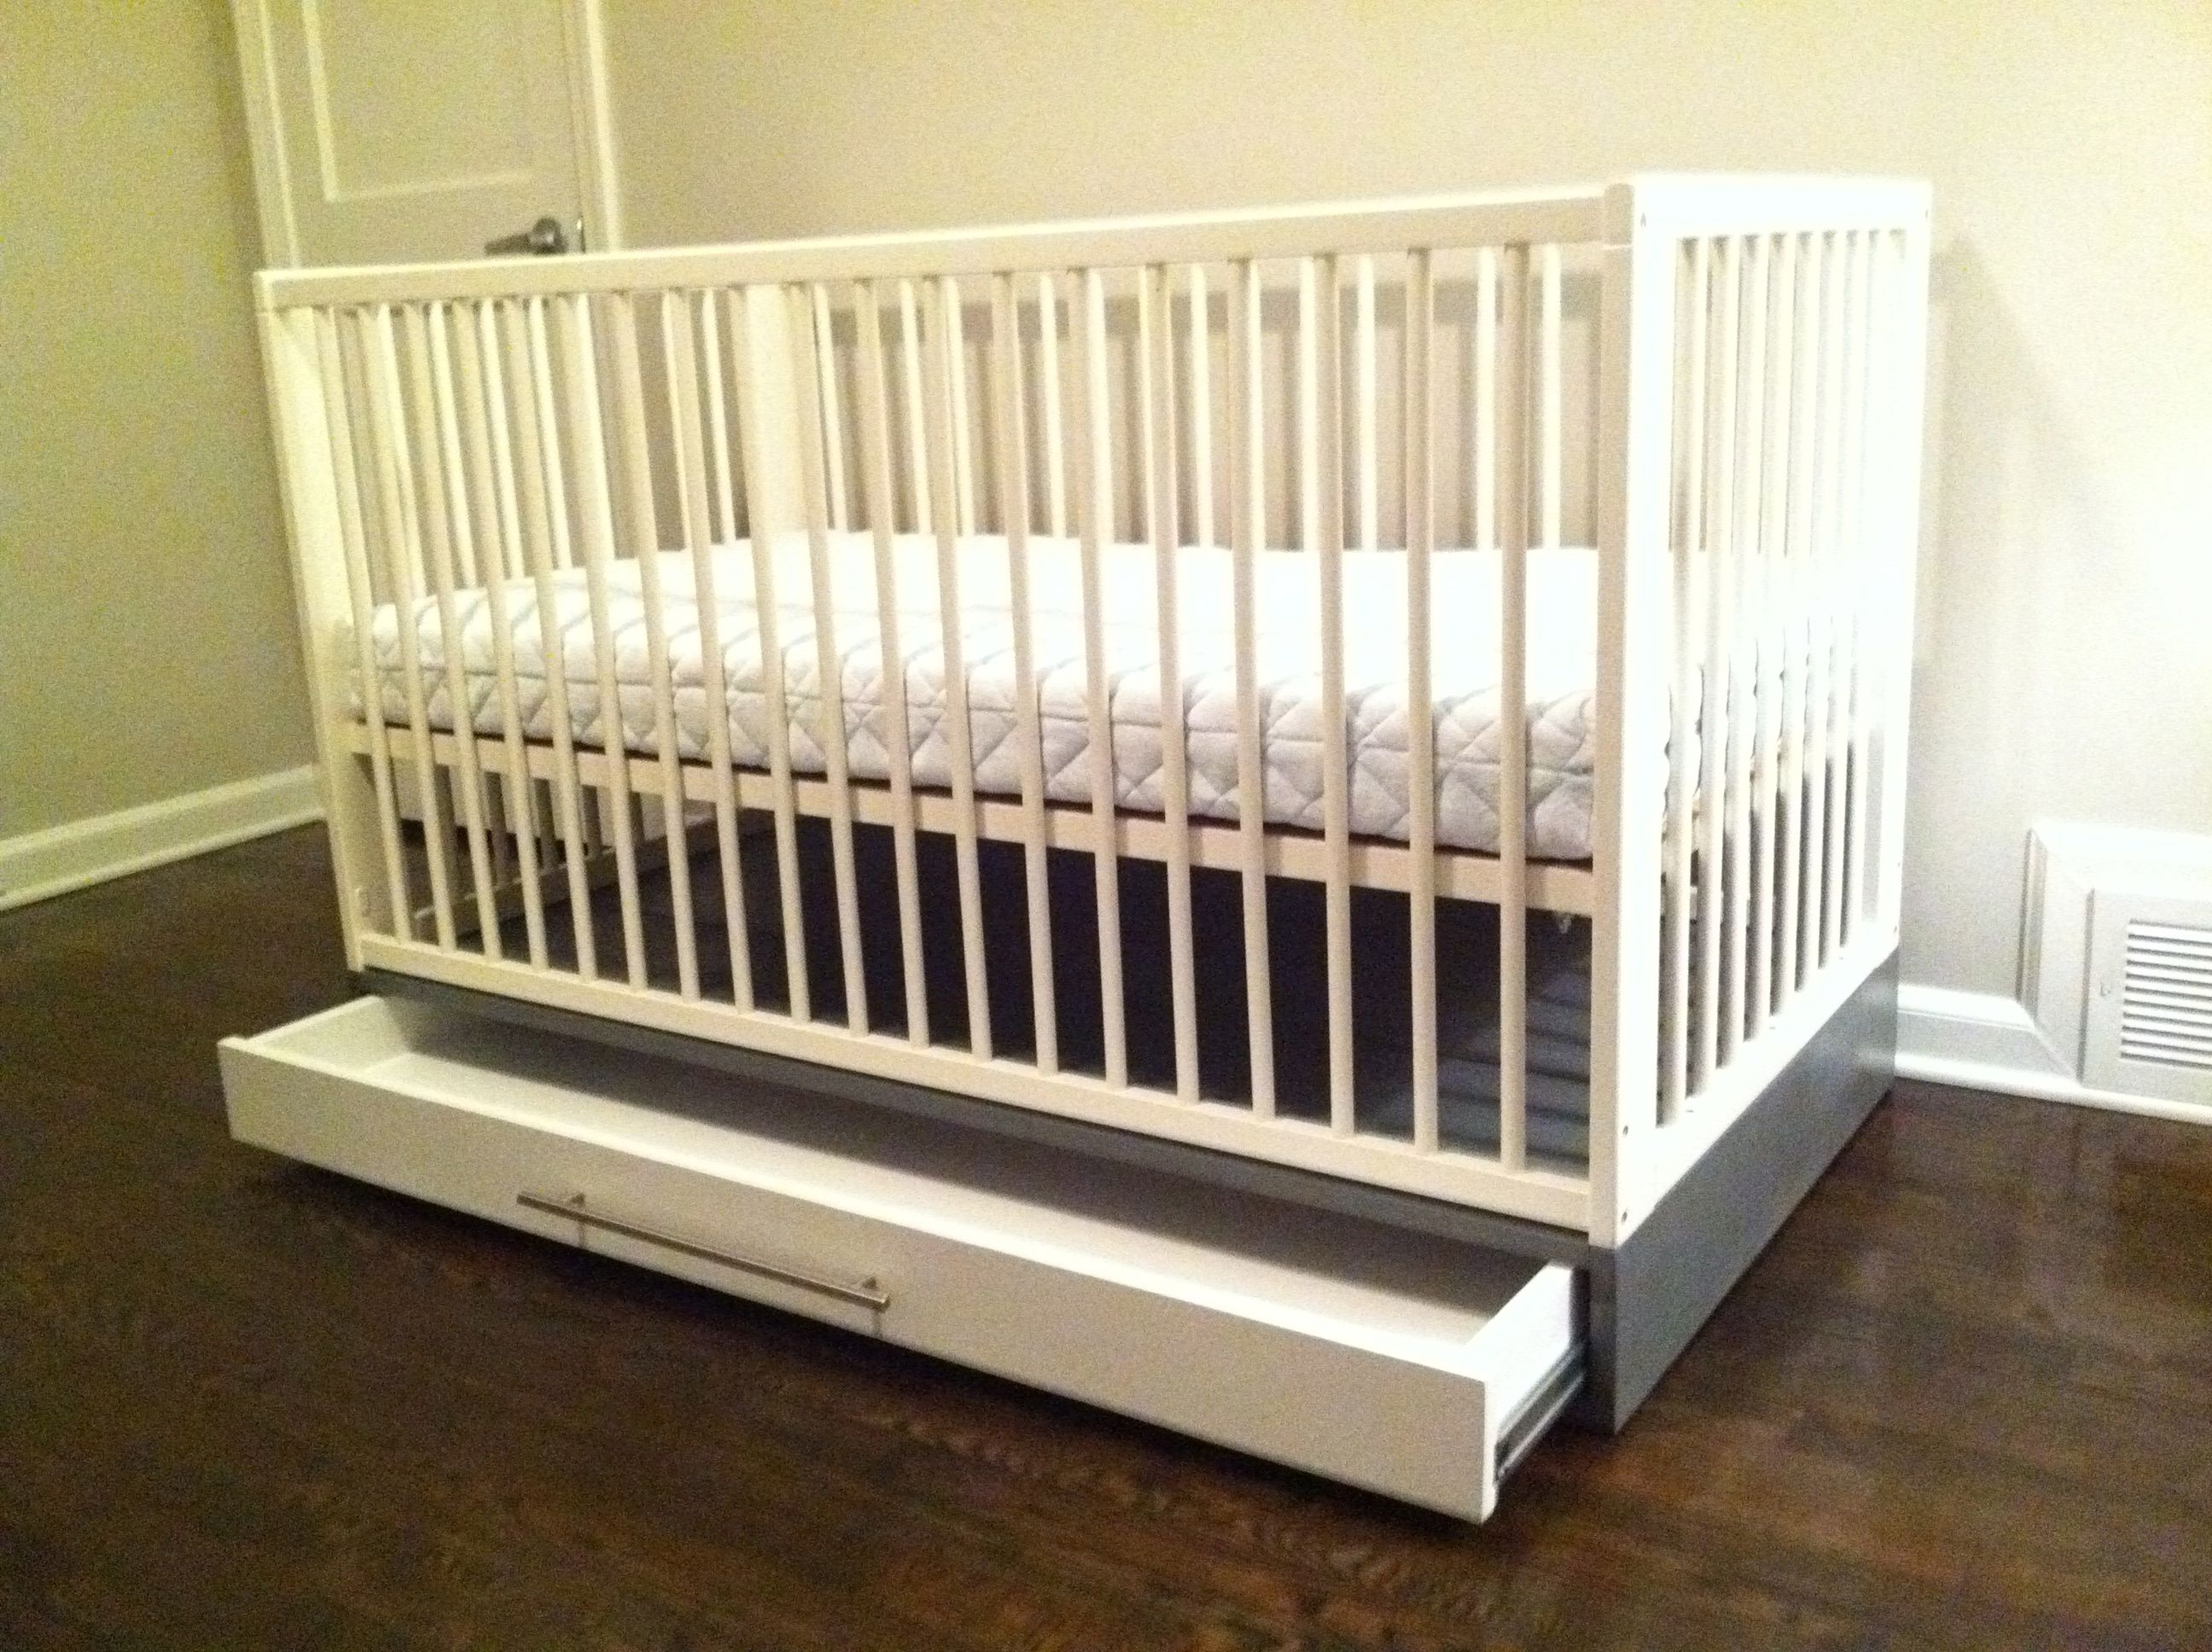 Brookfield fixed gate crib for sale - Build Drawer For Ikea Gulliver Crib Img_2555 Jpg 2592 1936